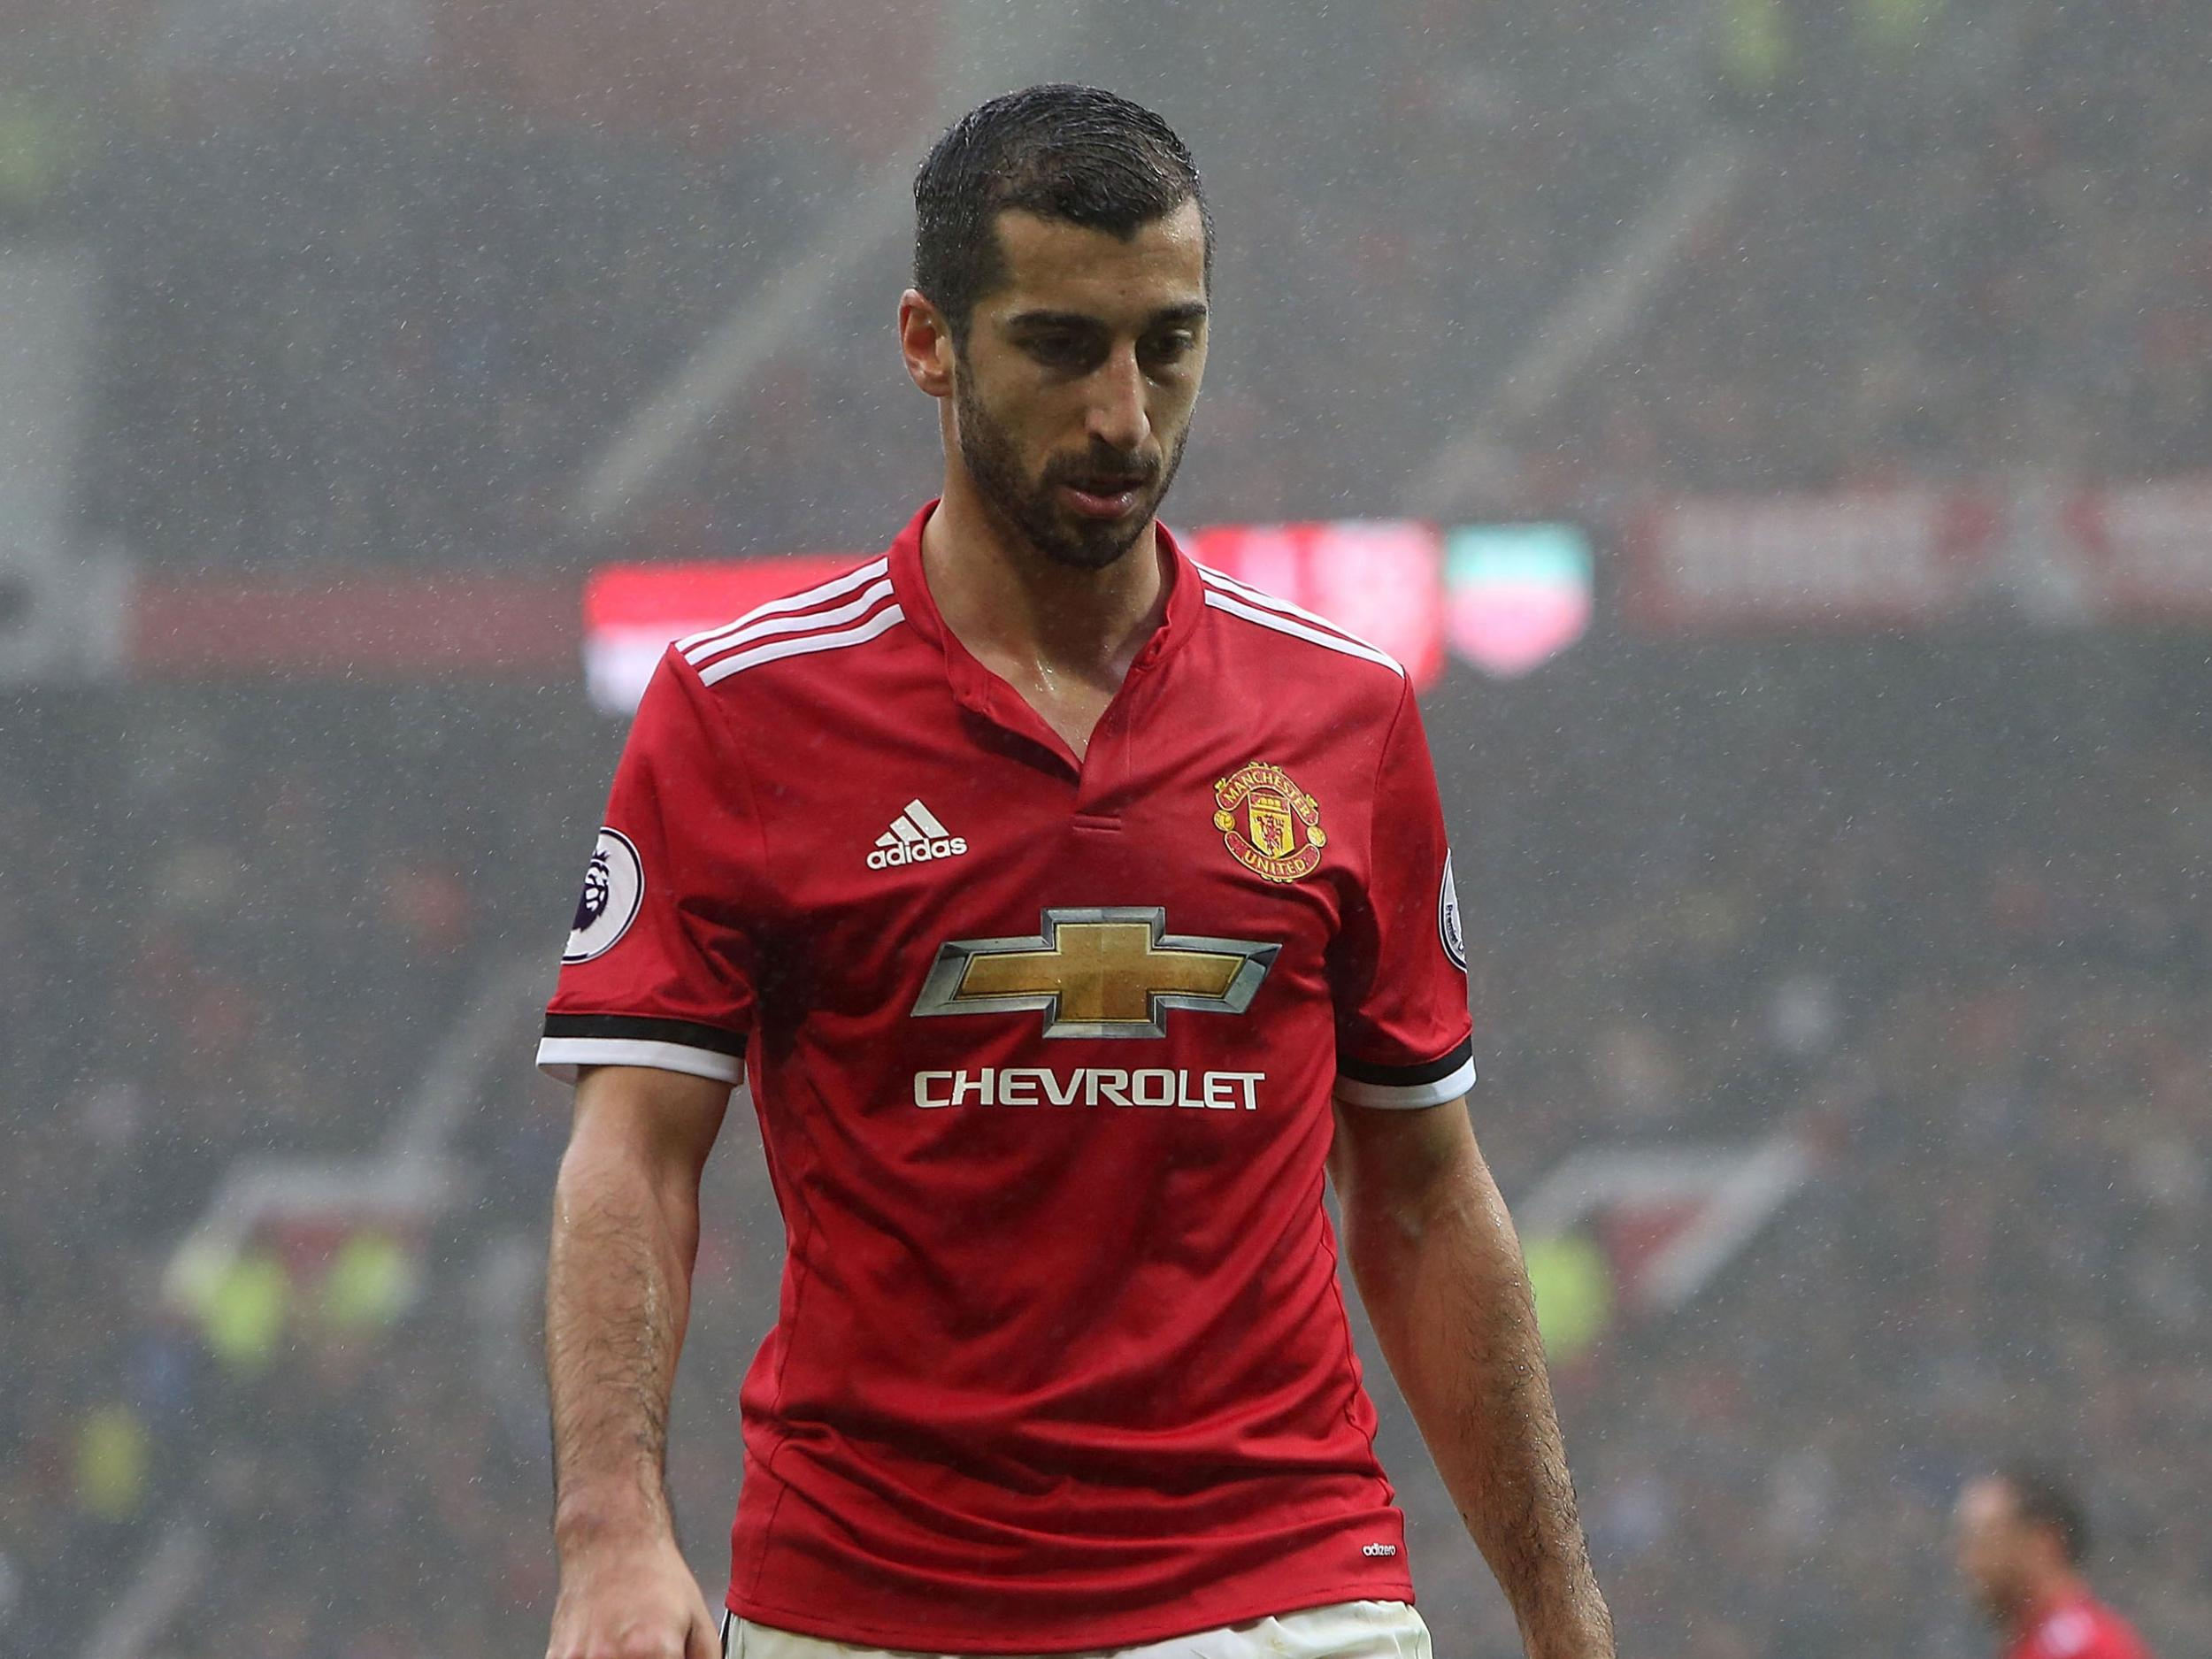 Alexis Sanchez latest: Henrikh Mkhitaryan's agent puts Manchester United's move for Arsenal star in doubt